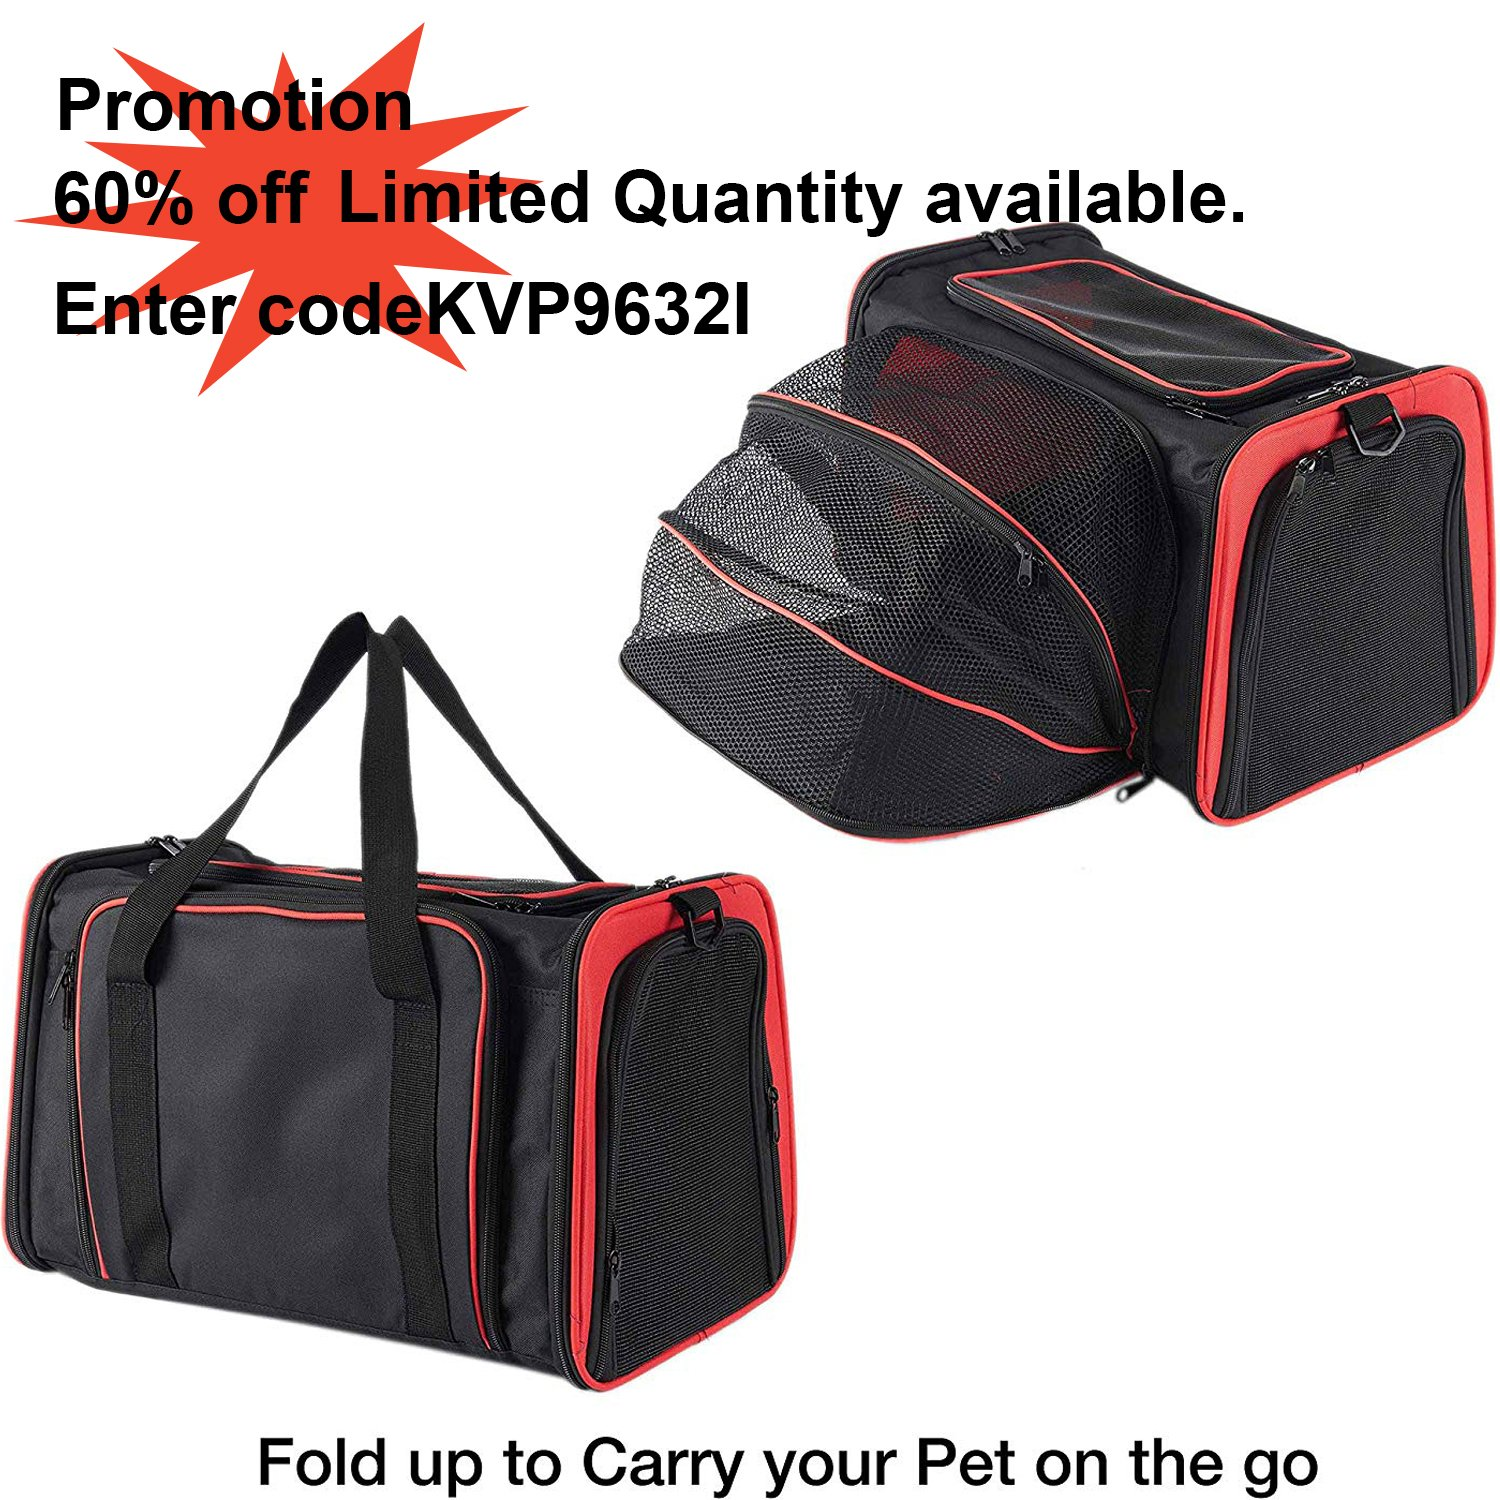 Pettom Expandable Foldable Pet Carrier Big Space Travel Handbag Soft-sided Bags for Dogs Cats and Other Animals(M, Orange) by Pettom (Image #1)